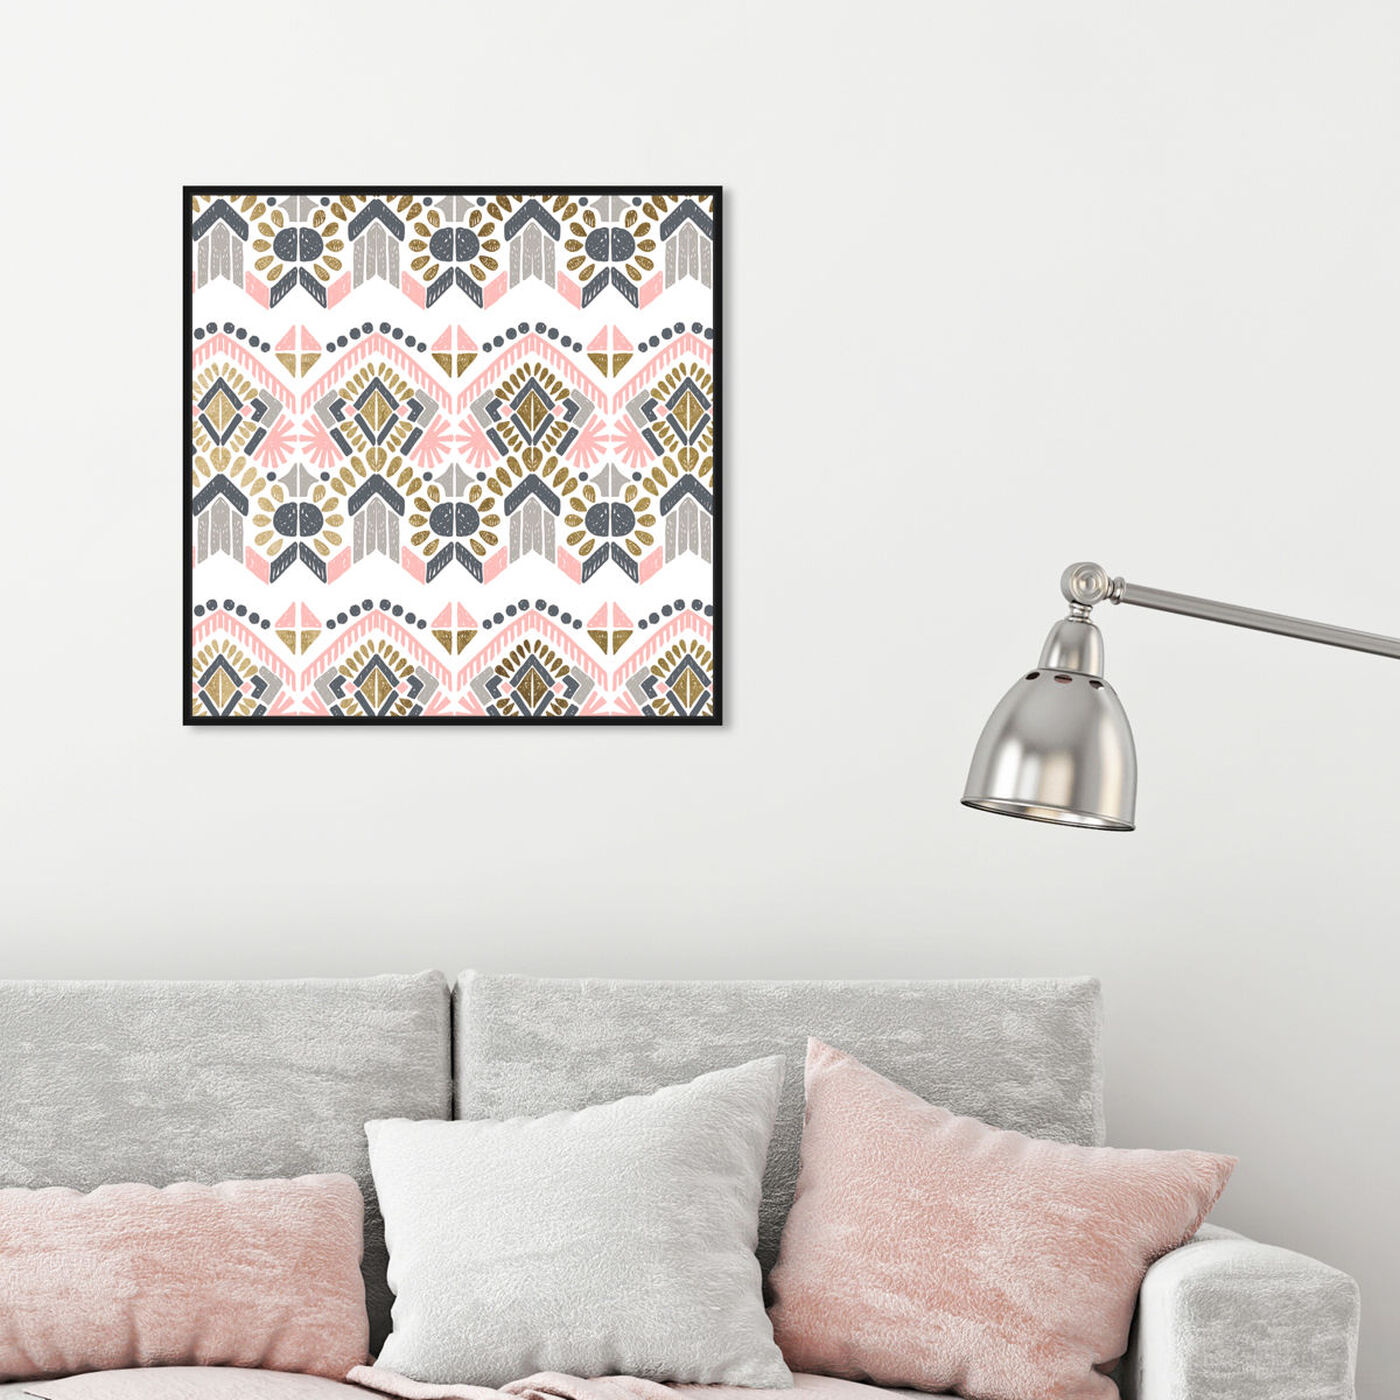 Hanging view of Soft Tribal featuring abstract and patterns art.